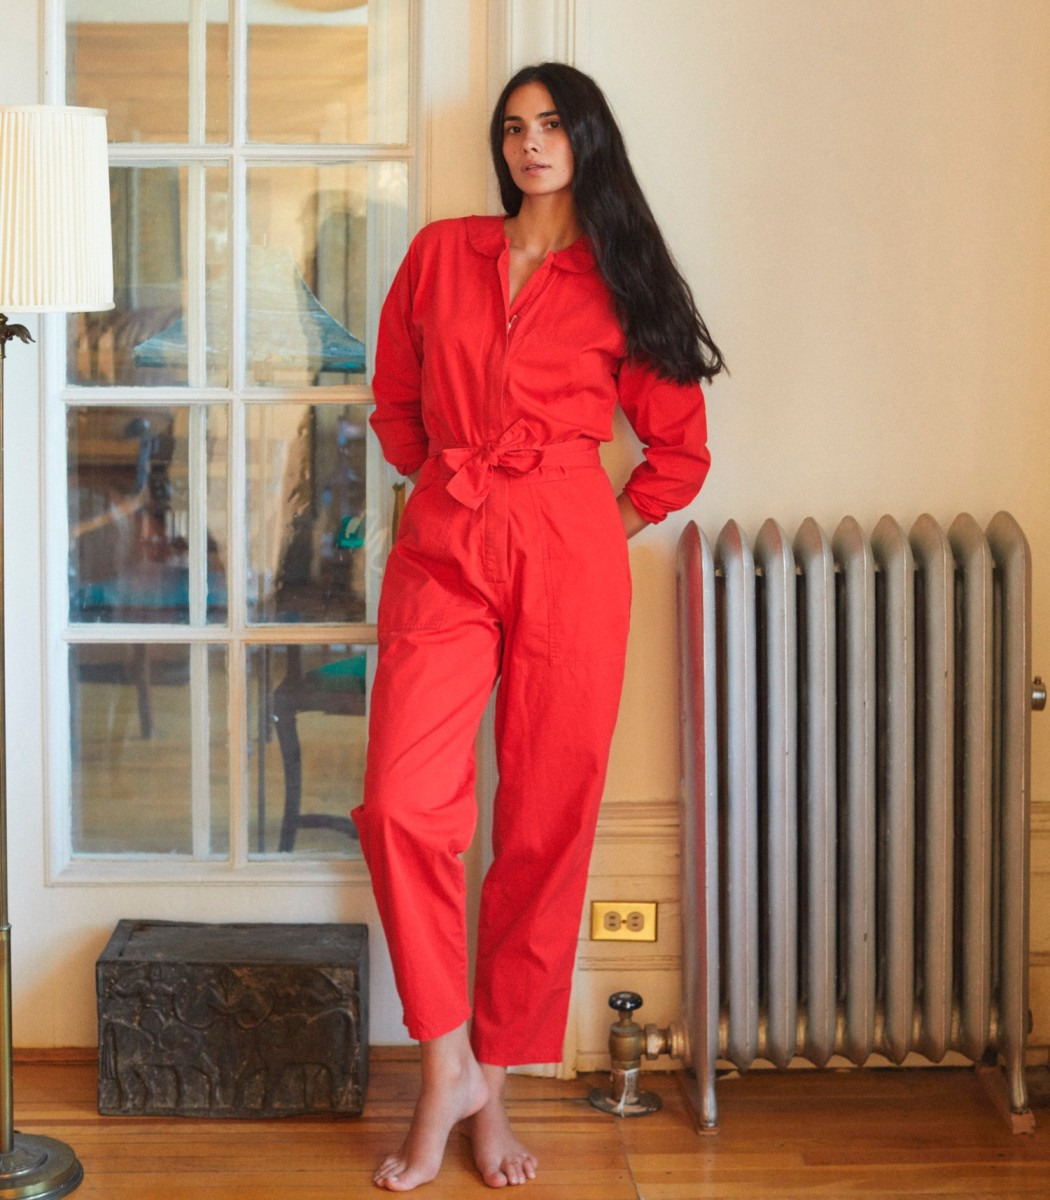 Loup Red Gilda Jumpsuit, $193, available here.